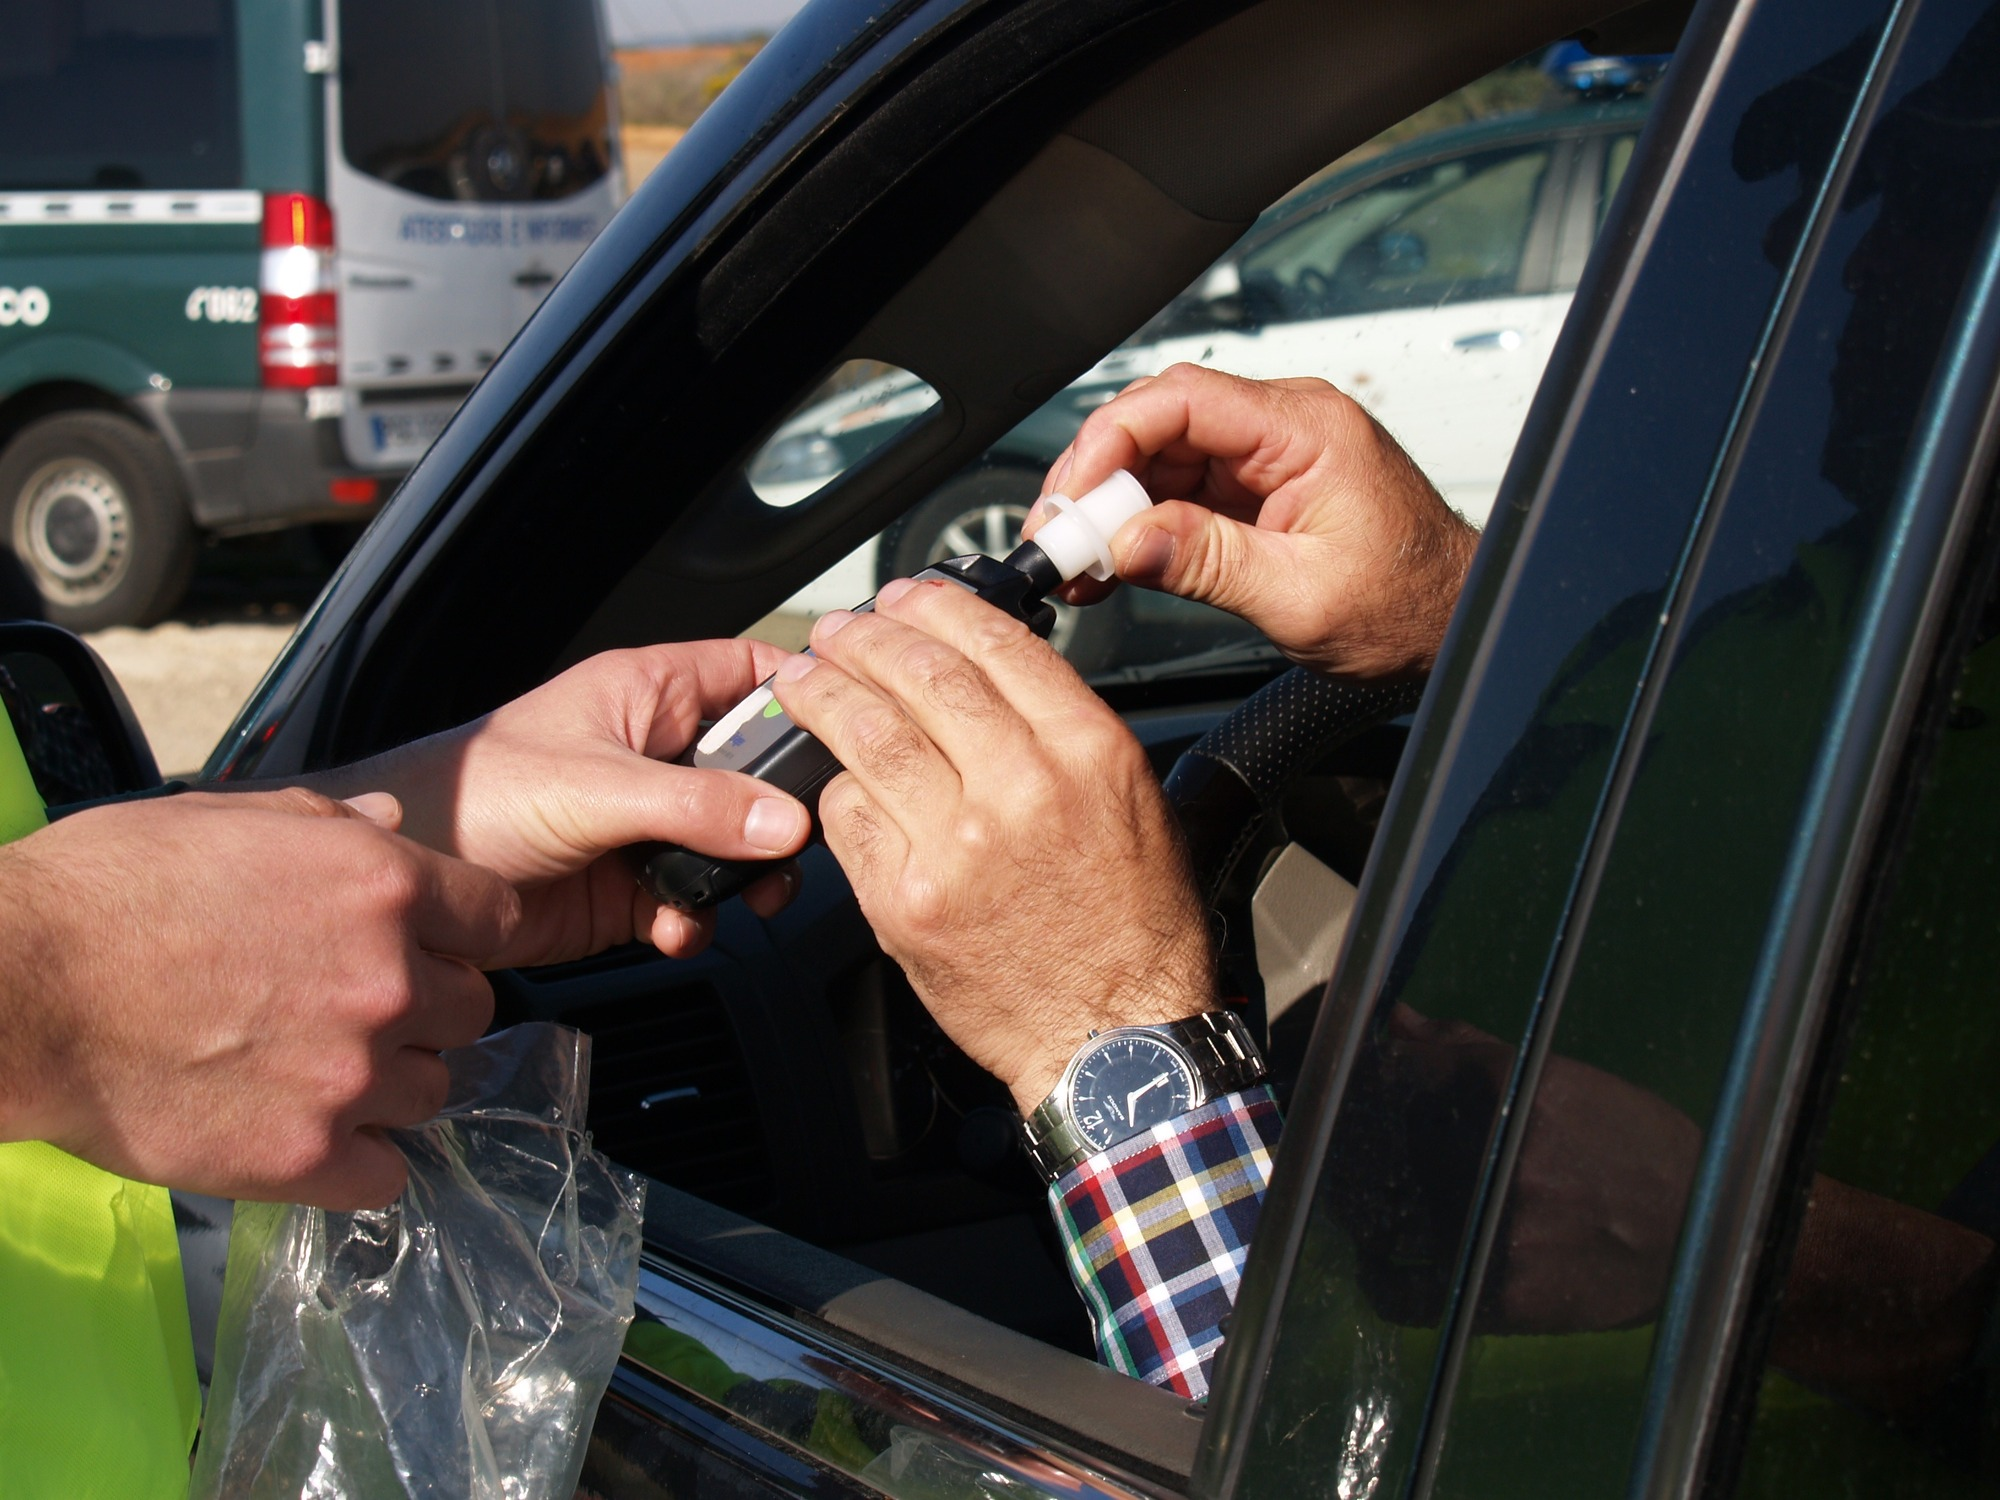 First Offense DWI in Texas: What Happens Now?